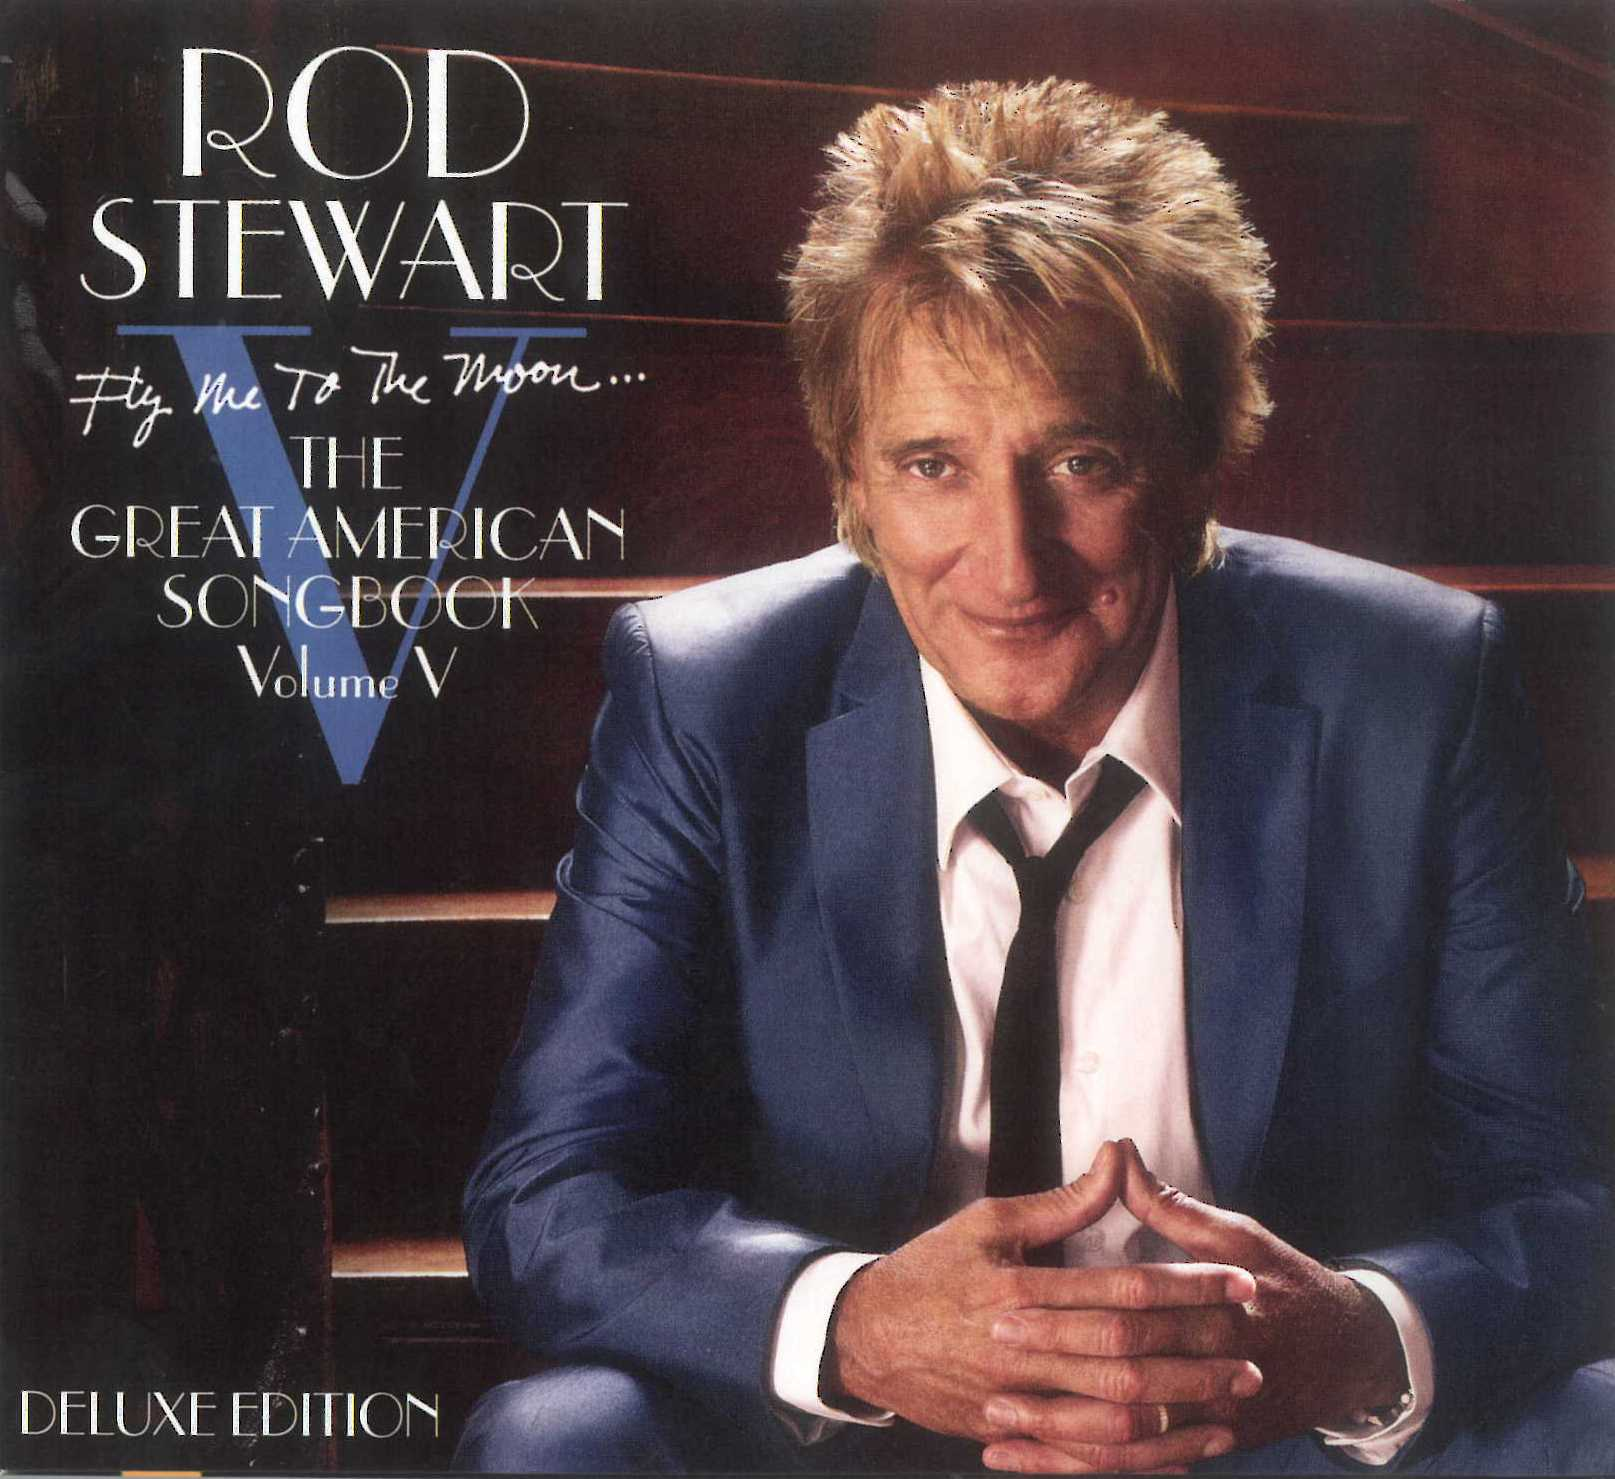 Fly me to the moon... The great american songbook Vol. 5 (Deluxe edition)